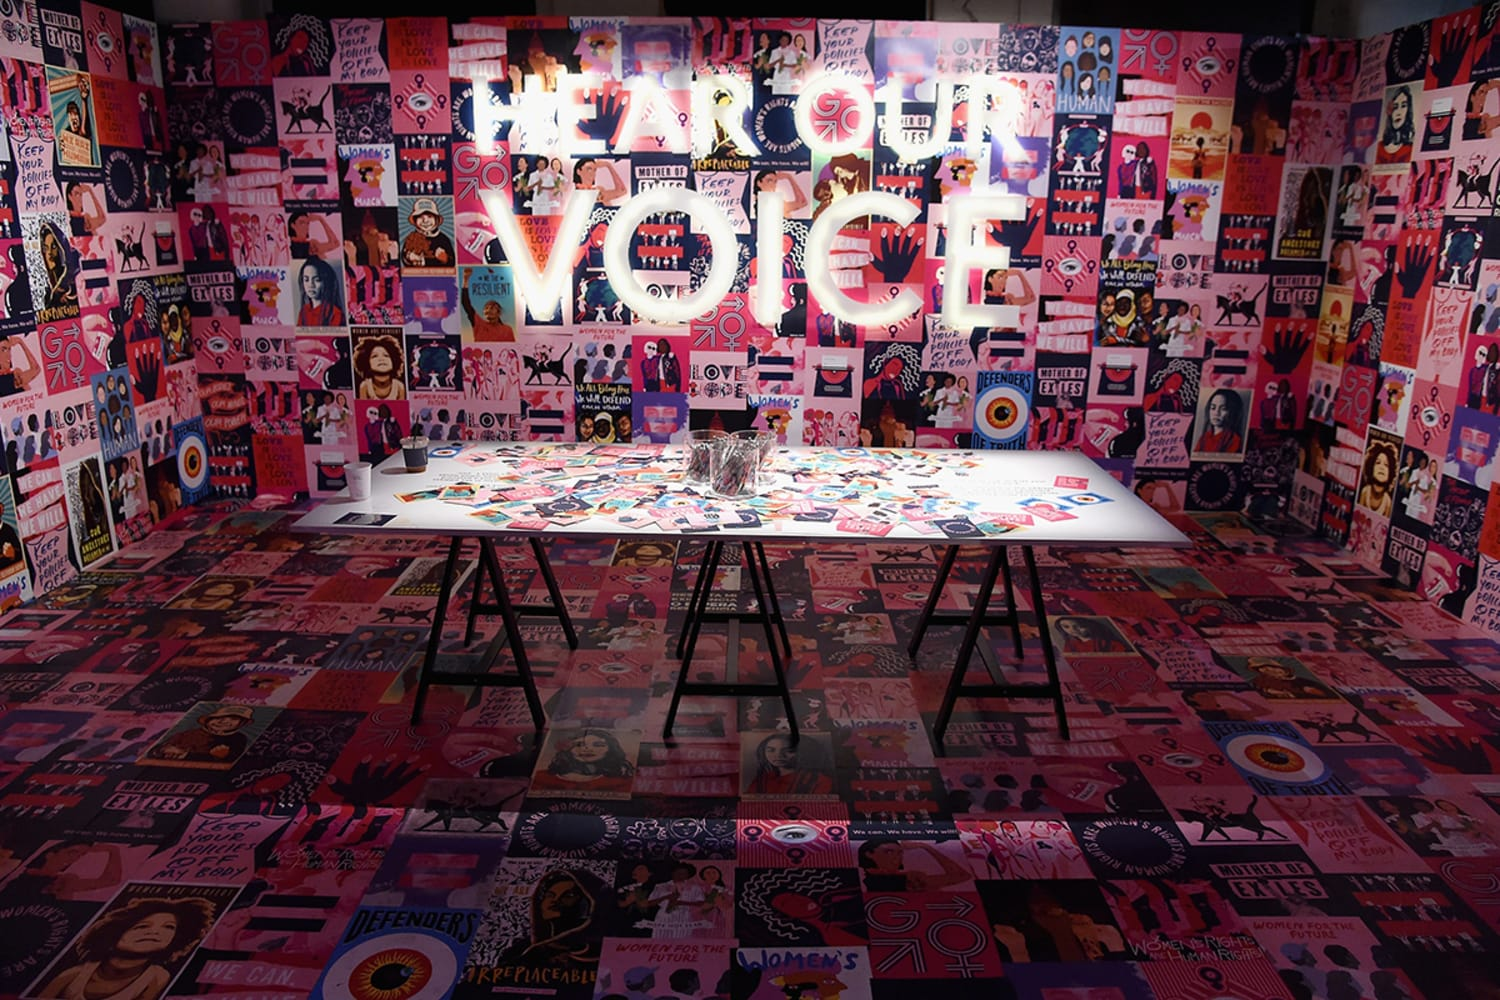 Hear Our Voice by Womens March at Refinery29 Third Annual 29 Rooms Turn It Into Art Press Preview